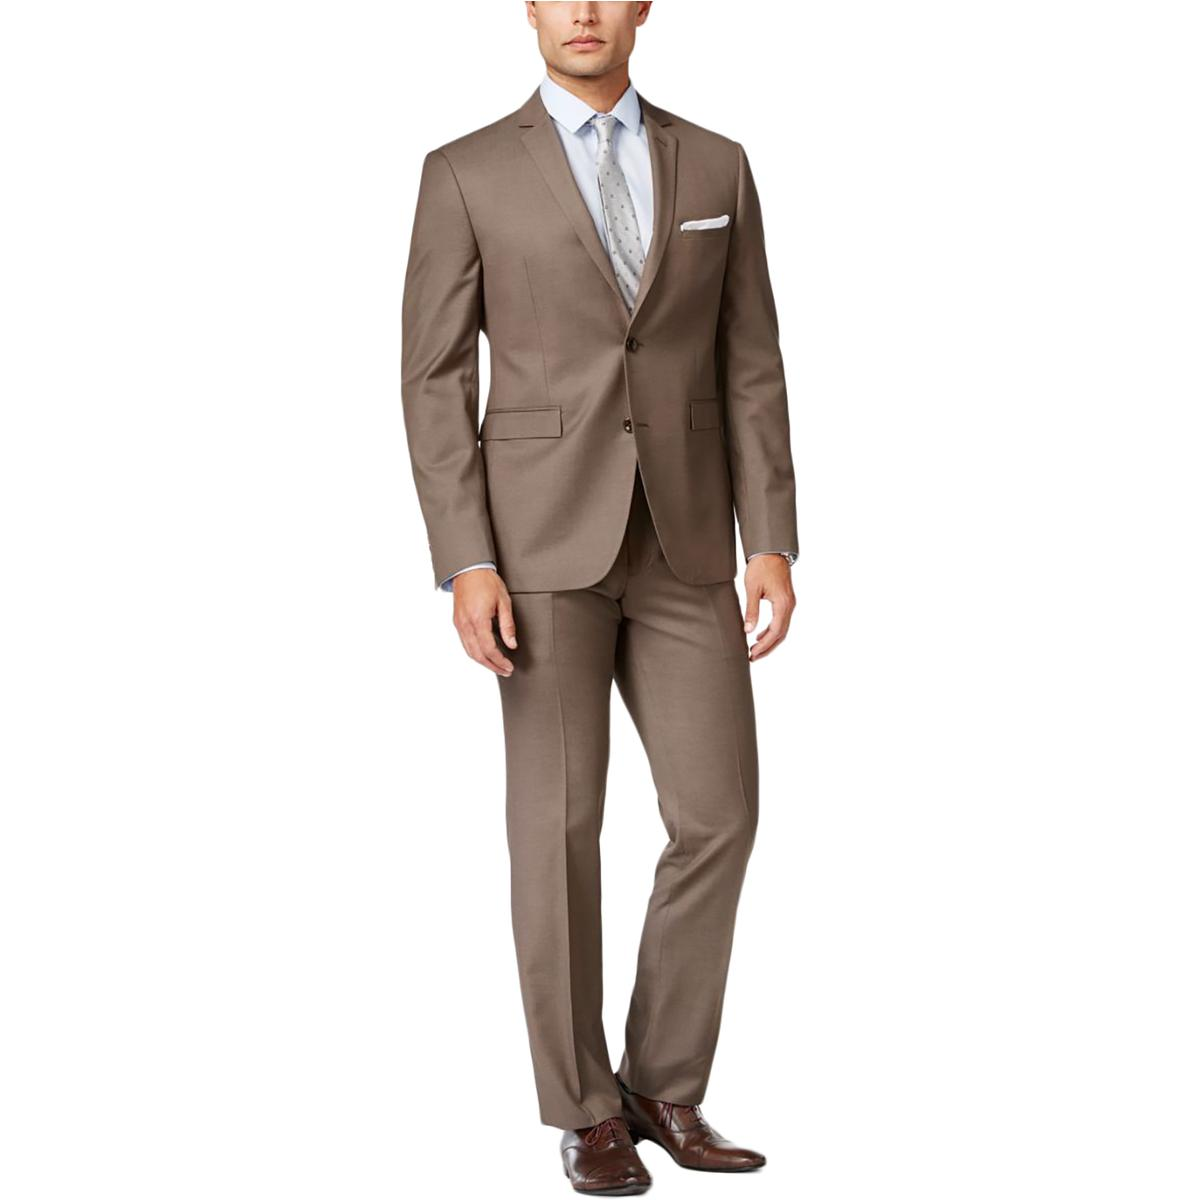 Perry Ellis Mens Sharkskin Very Slim Fit Two-Button Suit